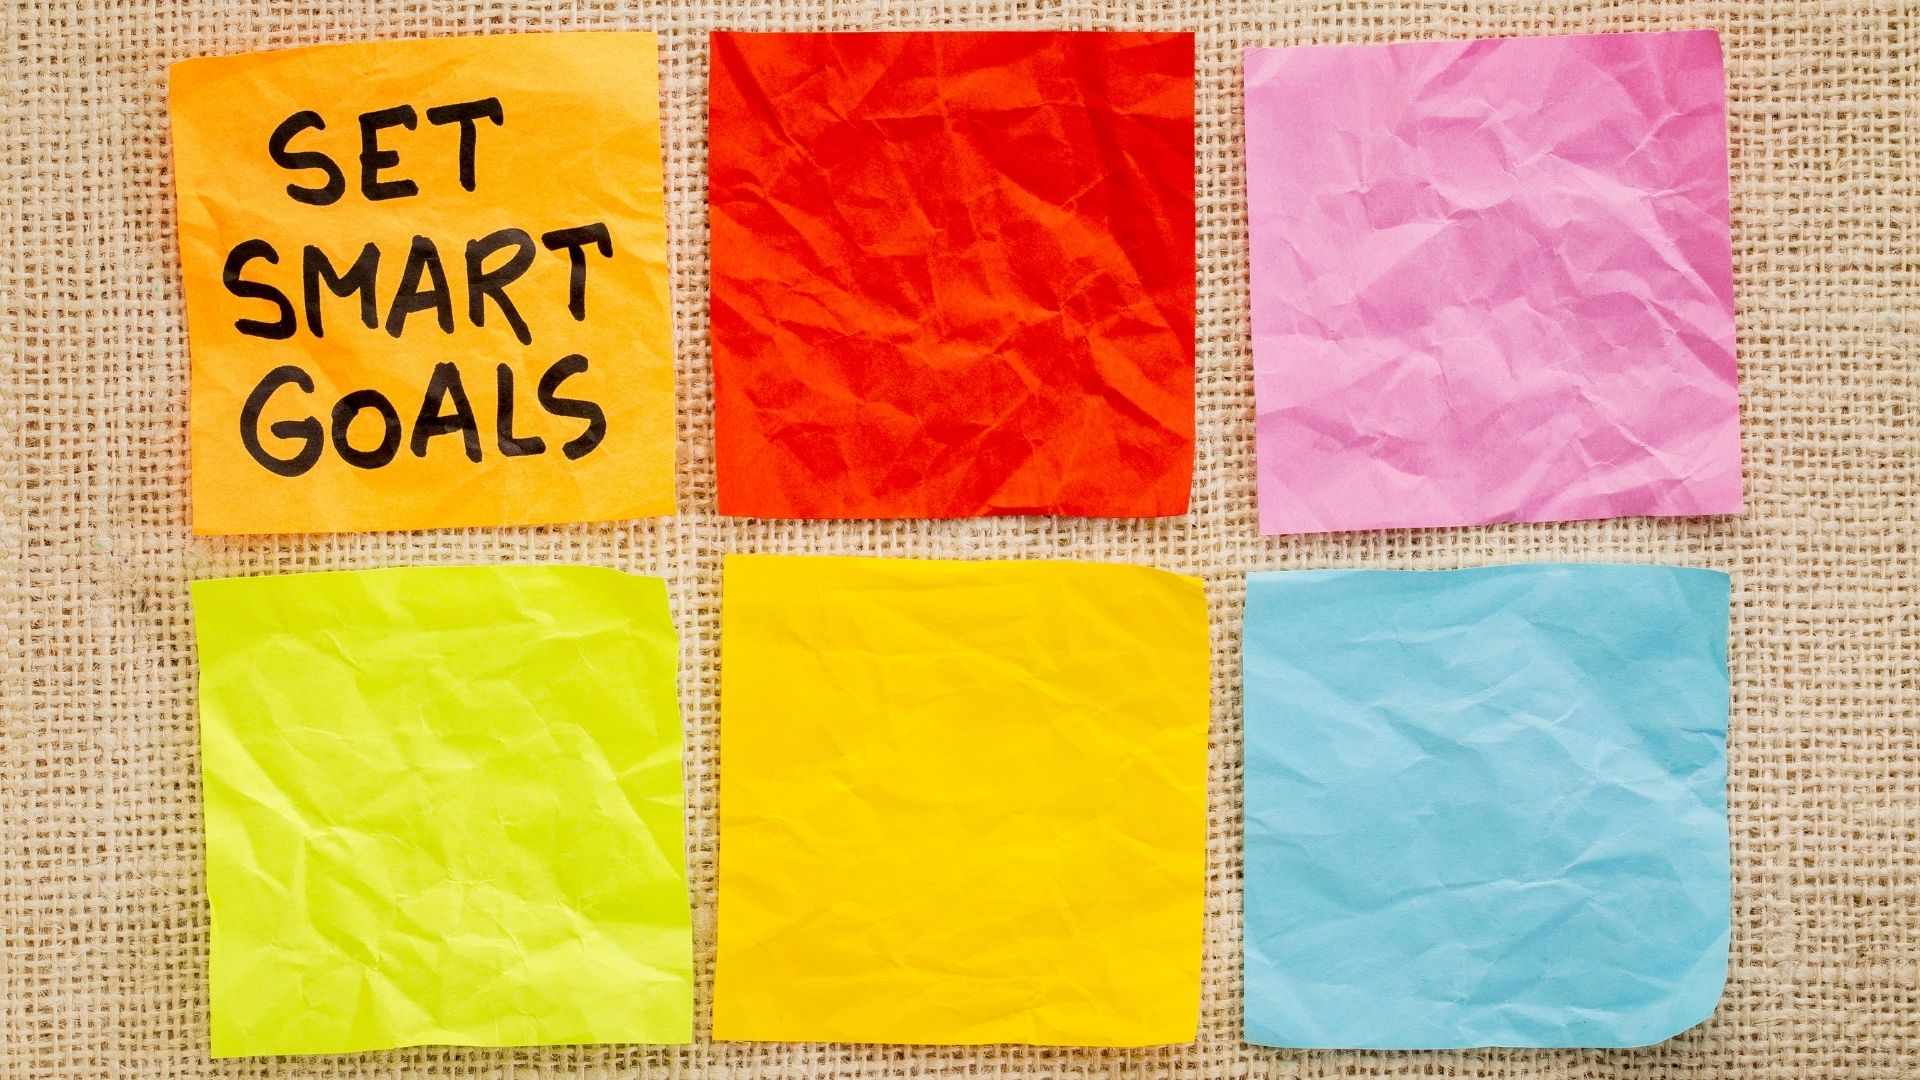 """Cork board with 6 post-it notes. The 1st is orange and says """"Set smart Goals"""". The remaining are blank and colored red, pink, neon green, neon yellow and blue."""